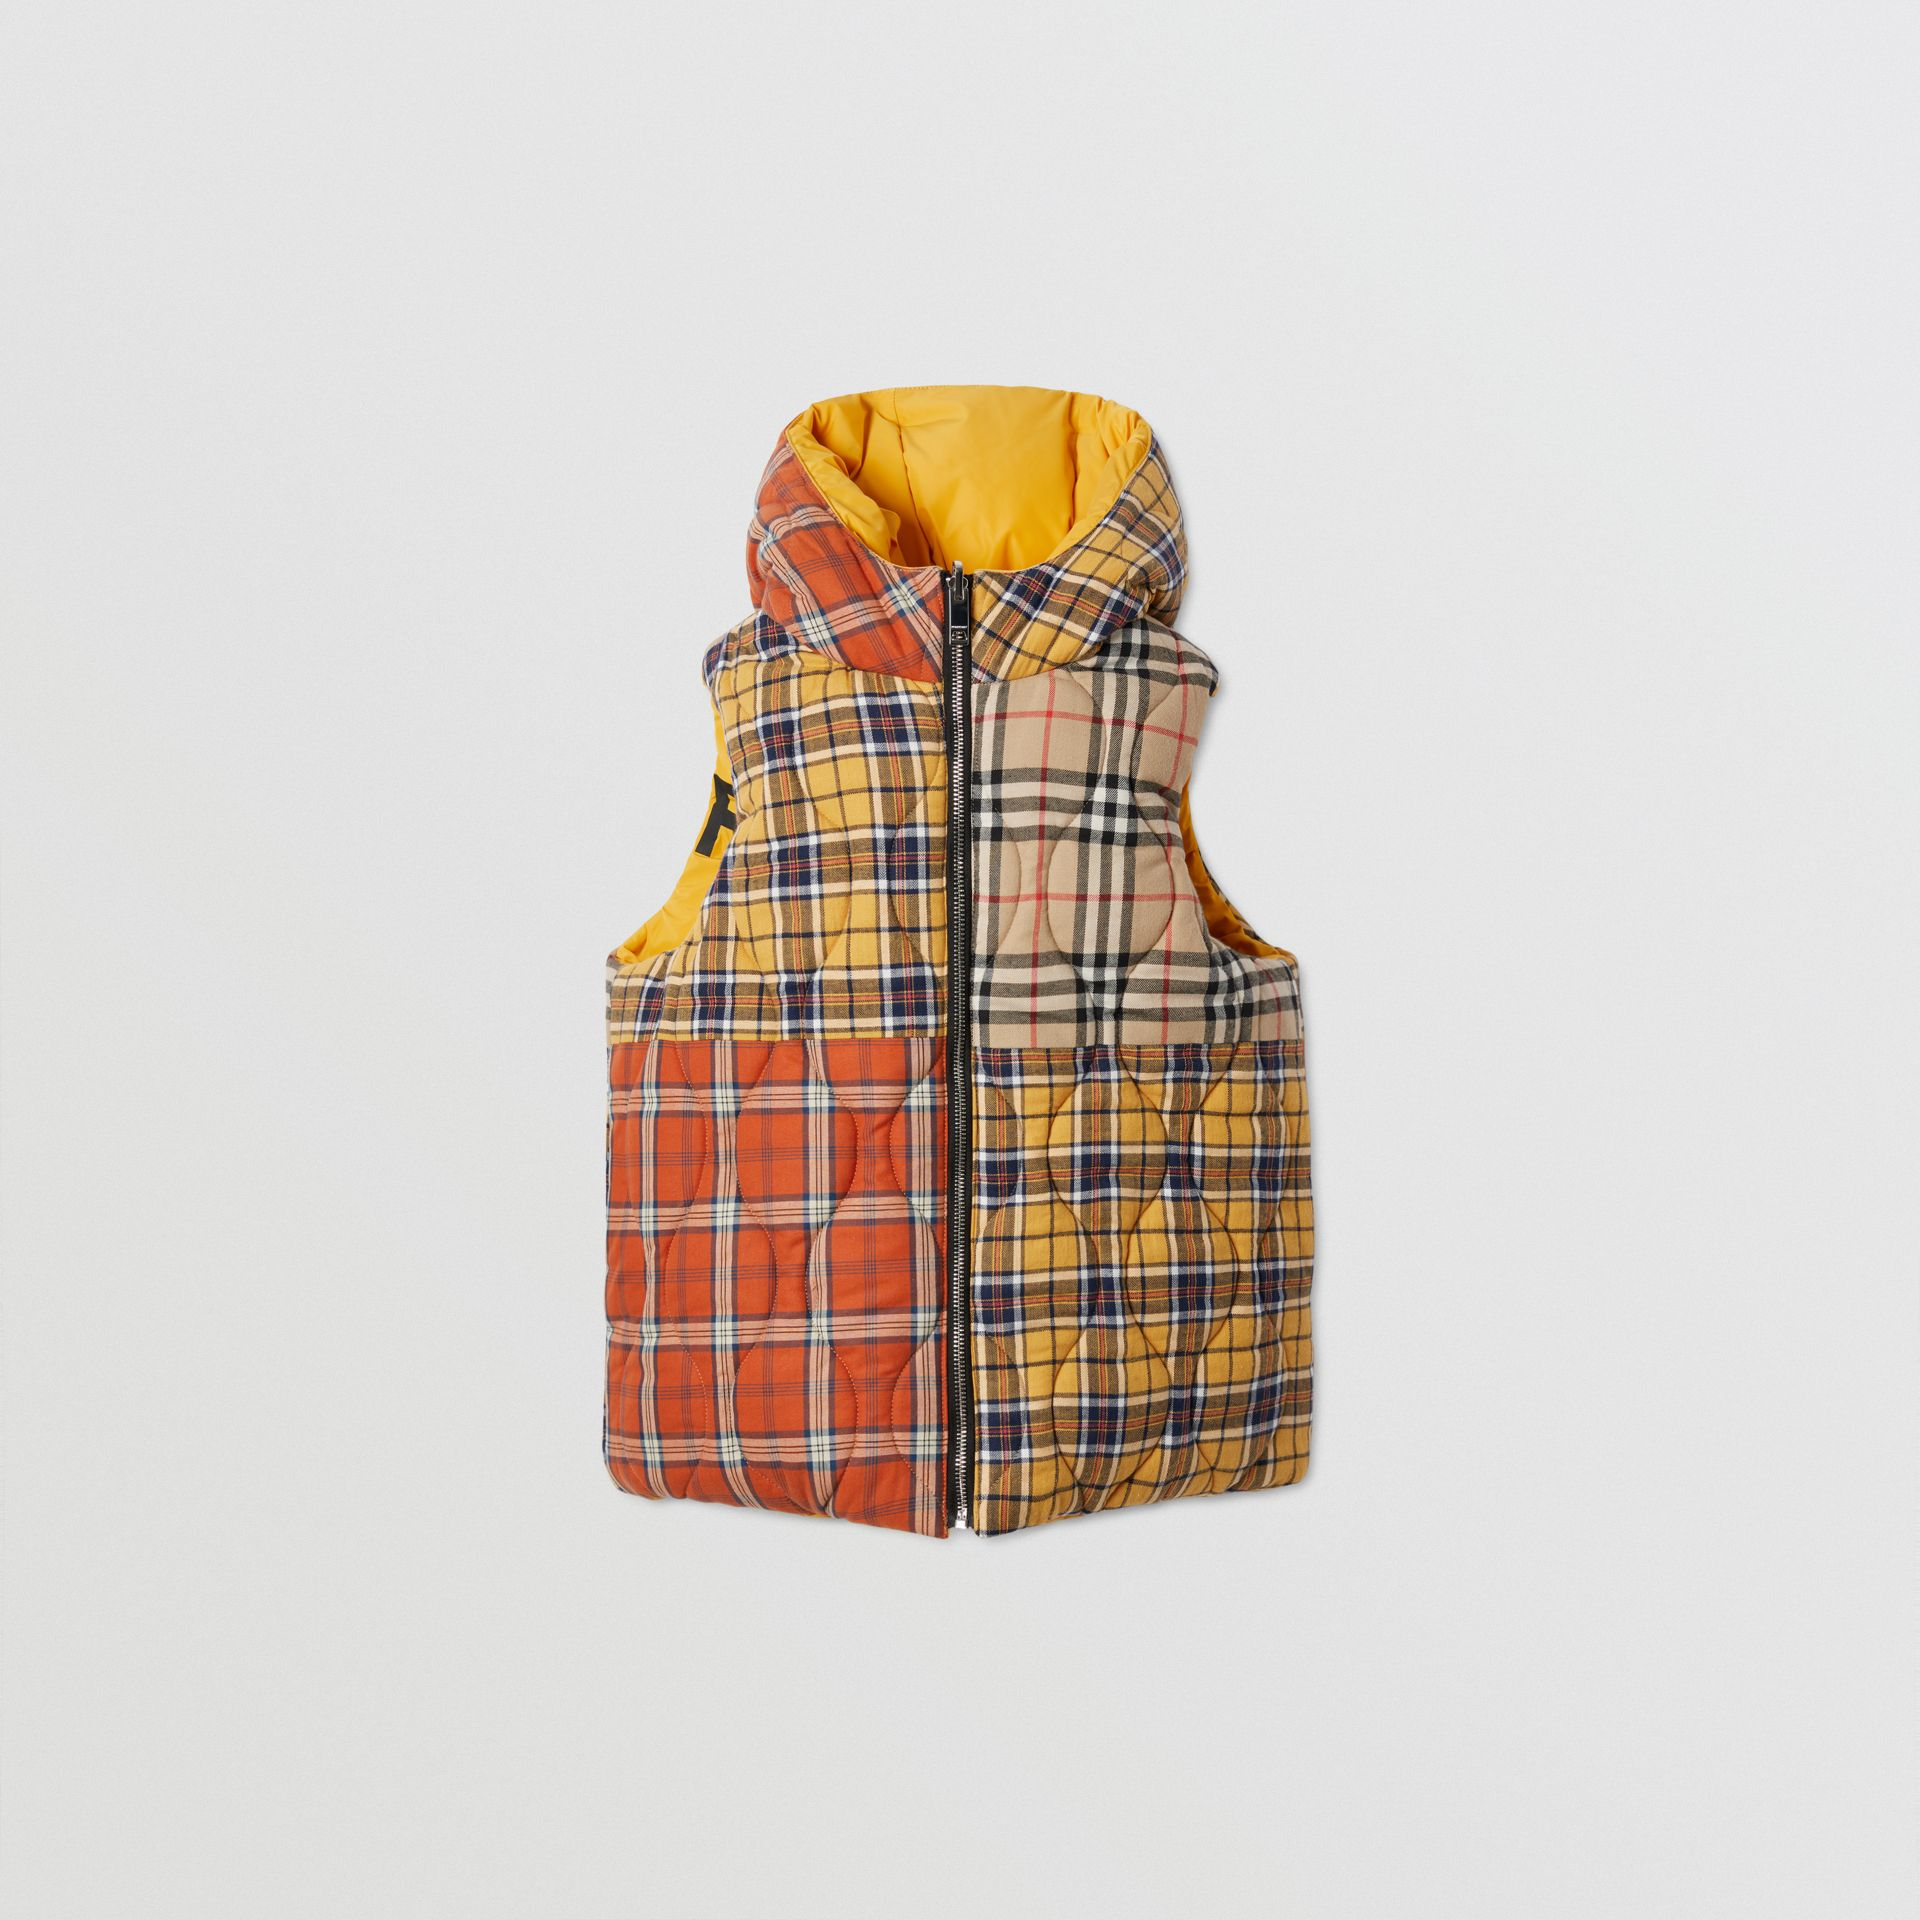 Reversible Horseferry Print Shape-memory Taffeta Gilet in Souwester Yellow | Burberry - gallery image 7